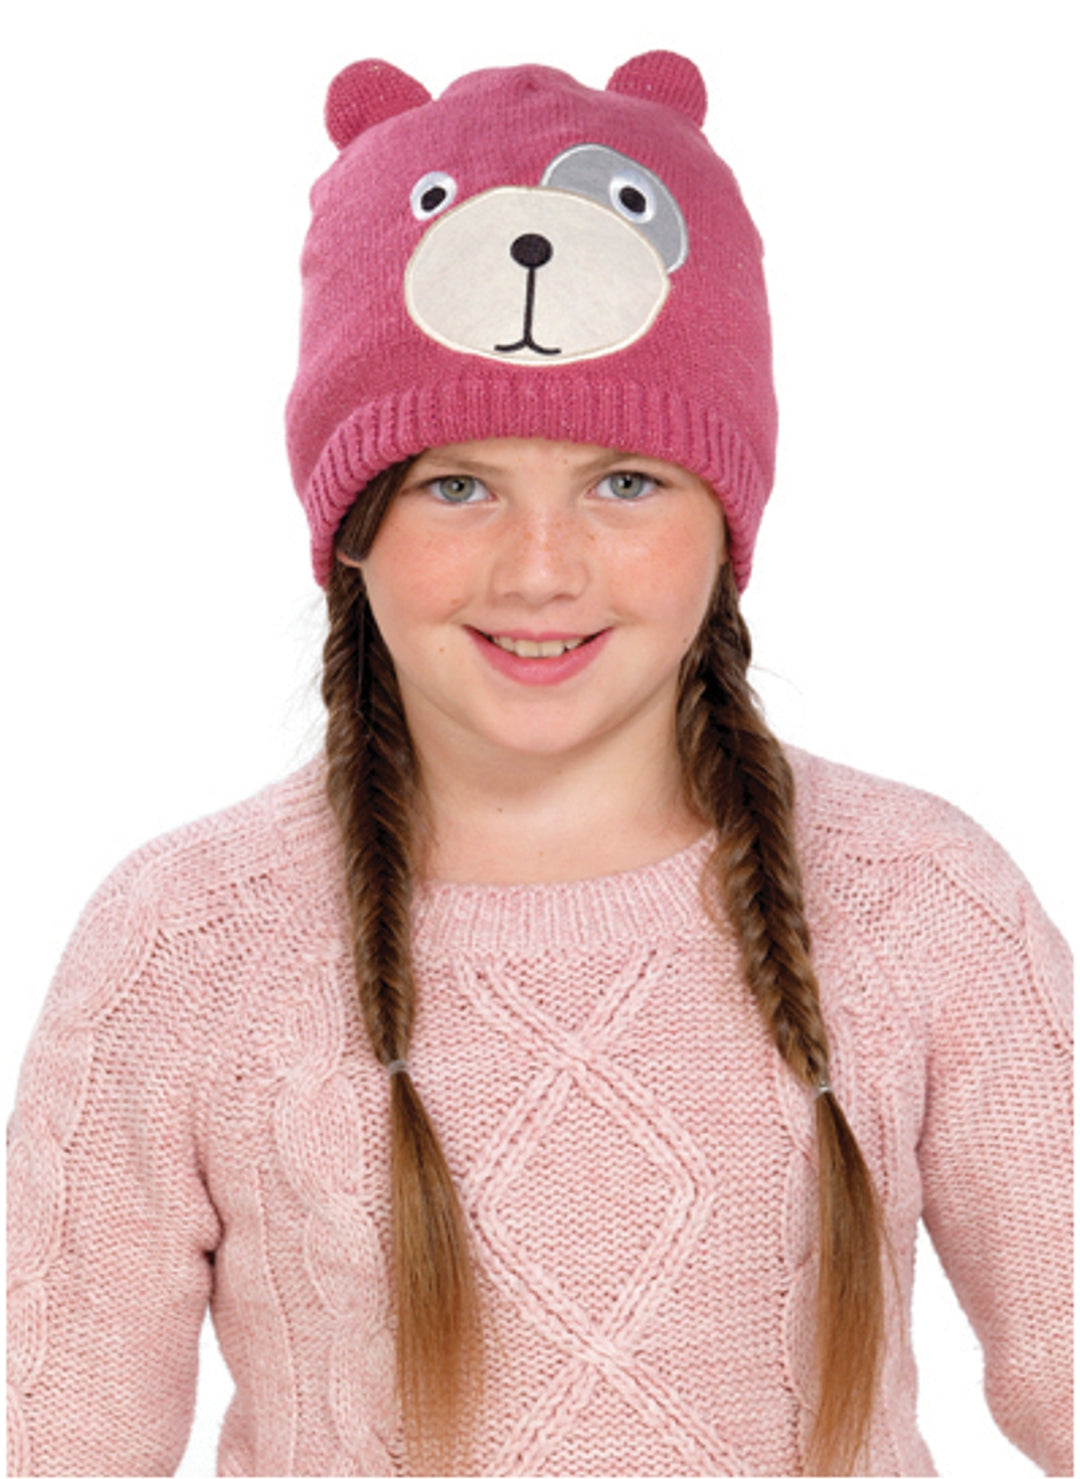 Pink Knitted Teddy Bear Face Hat